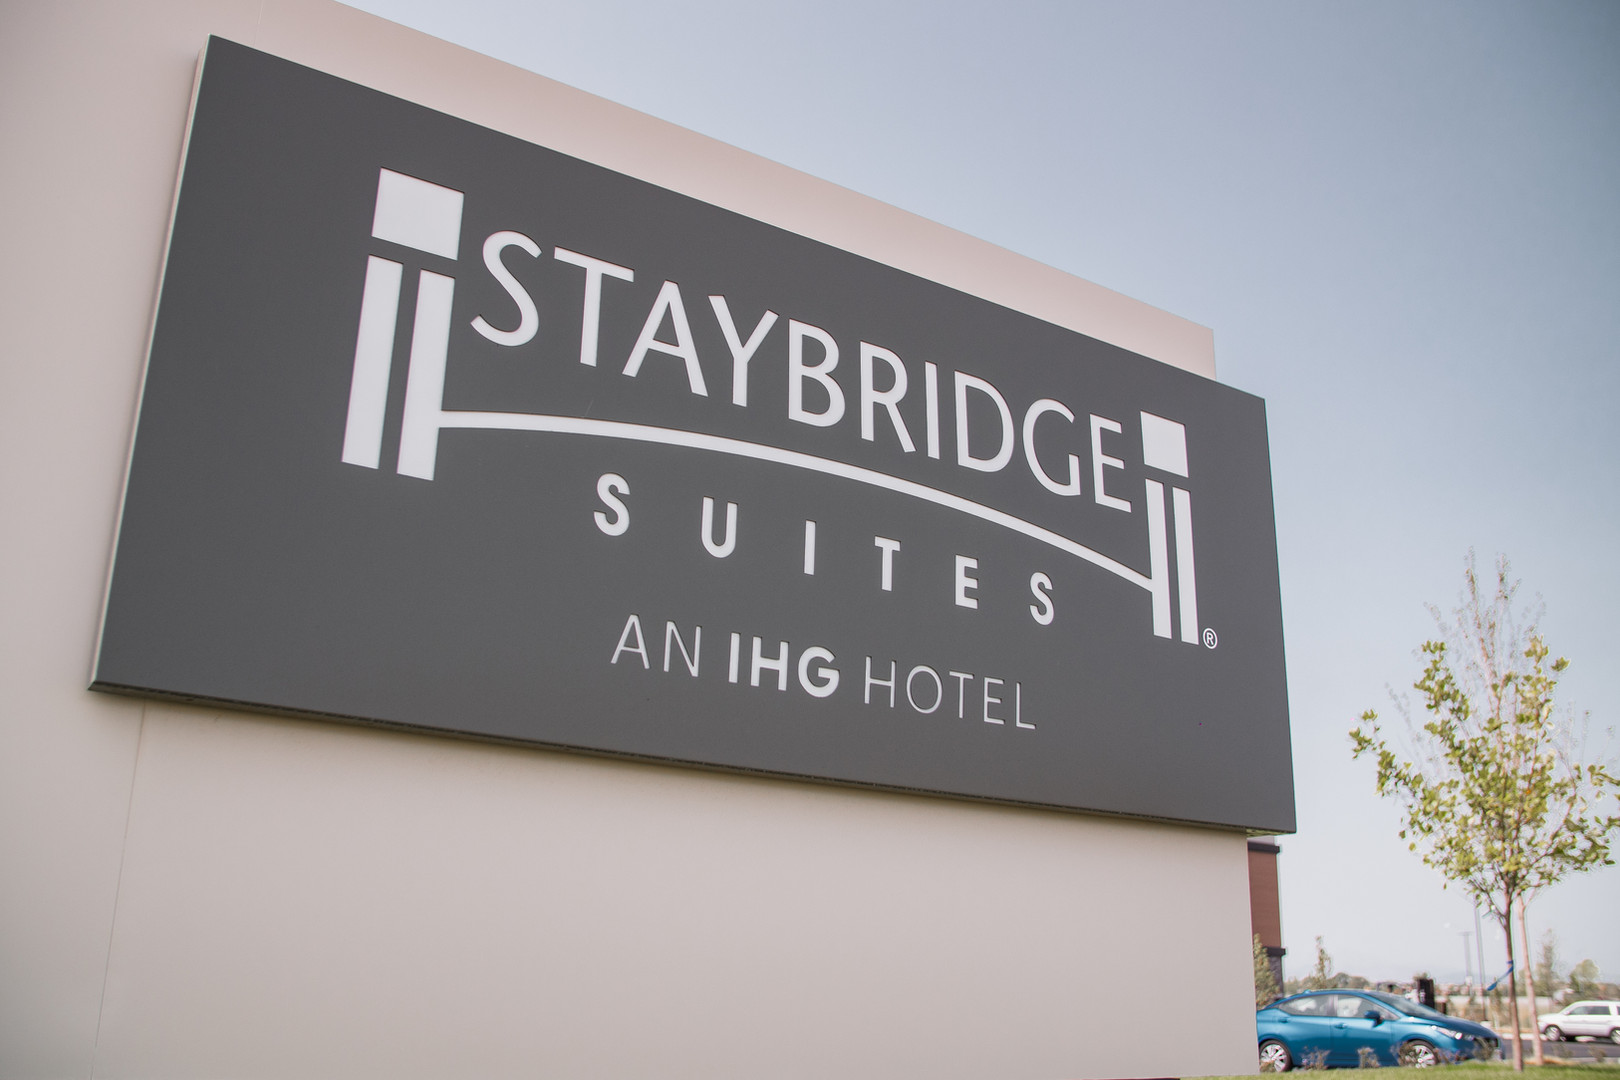 Terradyne provided Construction Materials Services for the Staybridge Suites in Denver Colorado.